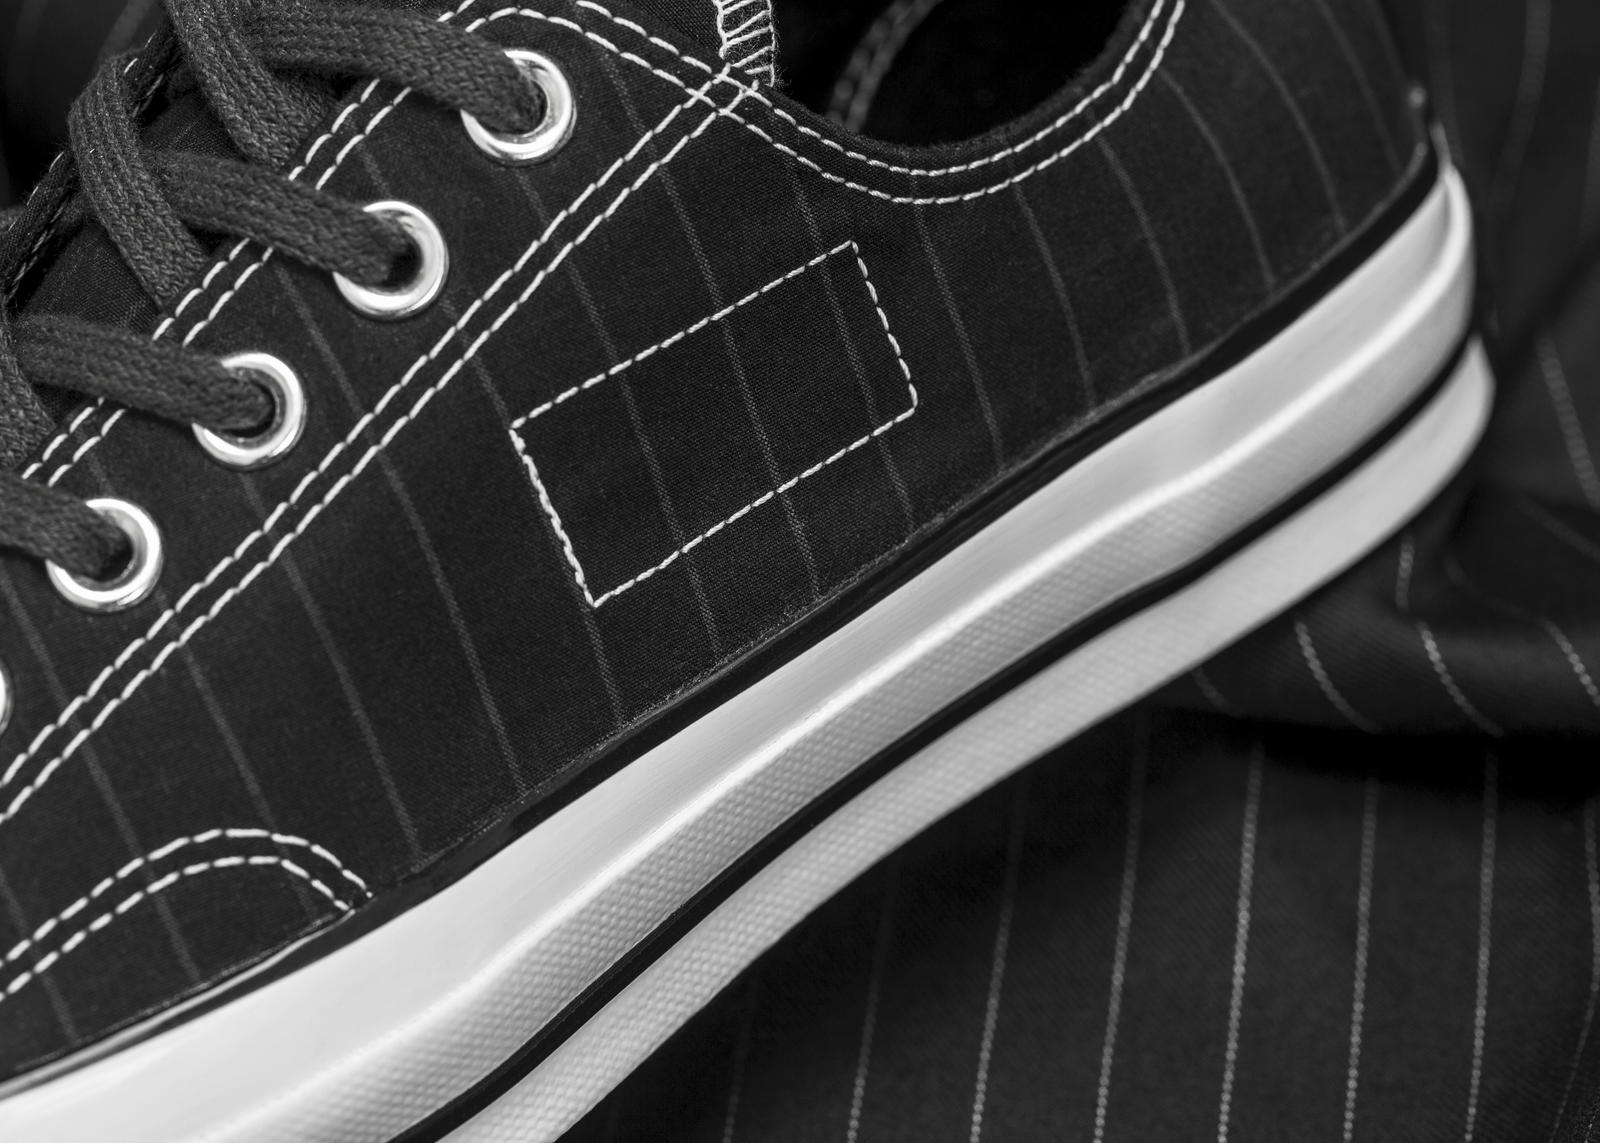 156451C Fragment Striped 02 Left Detail rectangle 1600 - #STYLEWATCH: @Converse and Fragment Design Collaborate on Chuck '70 Collection #ForeverChuck